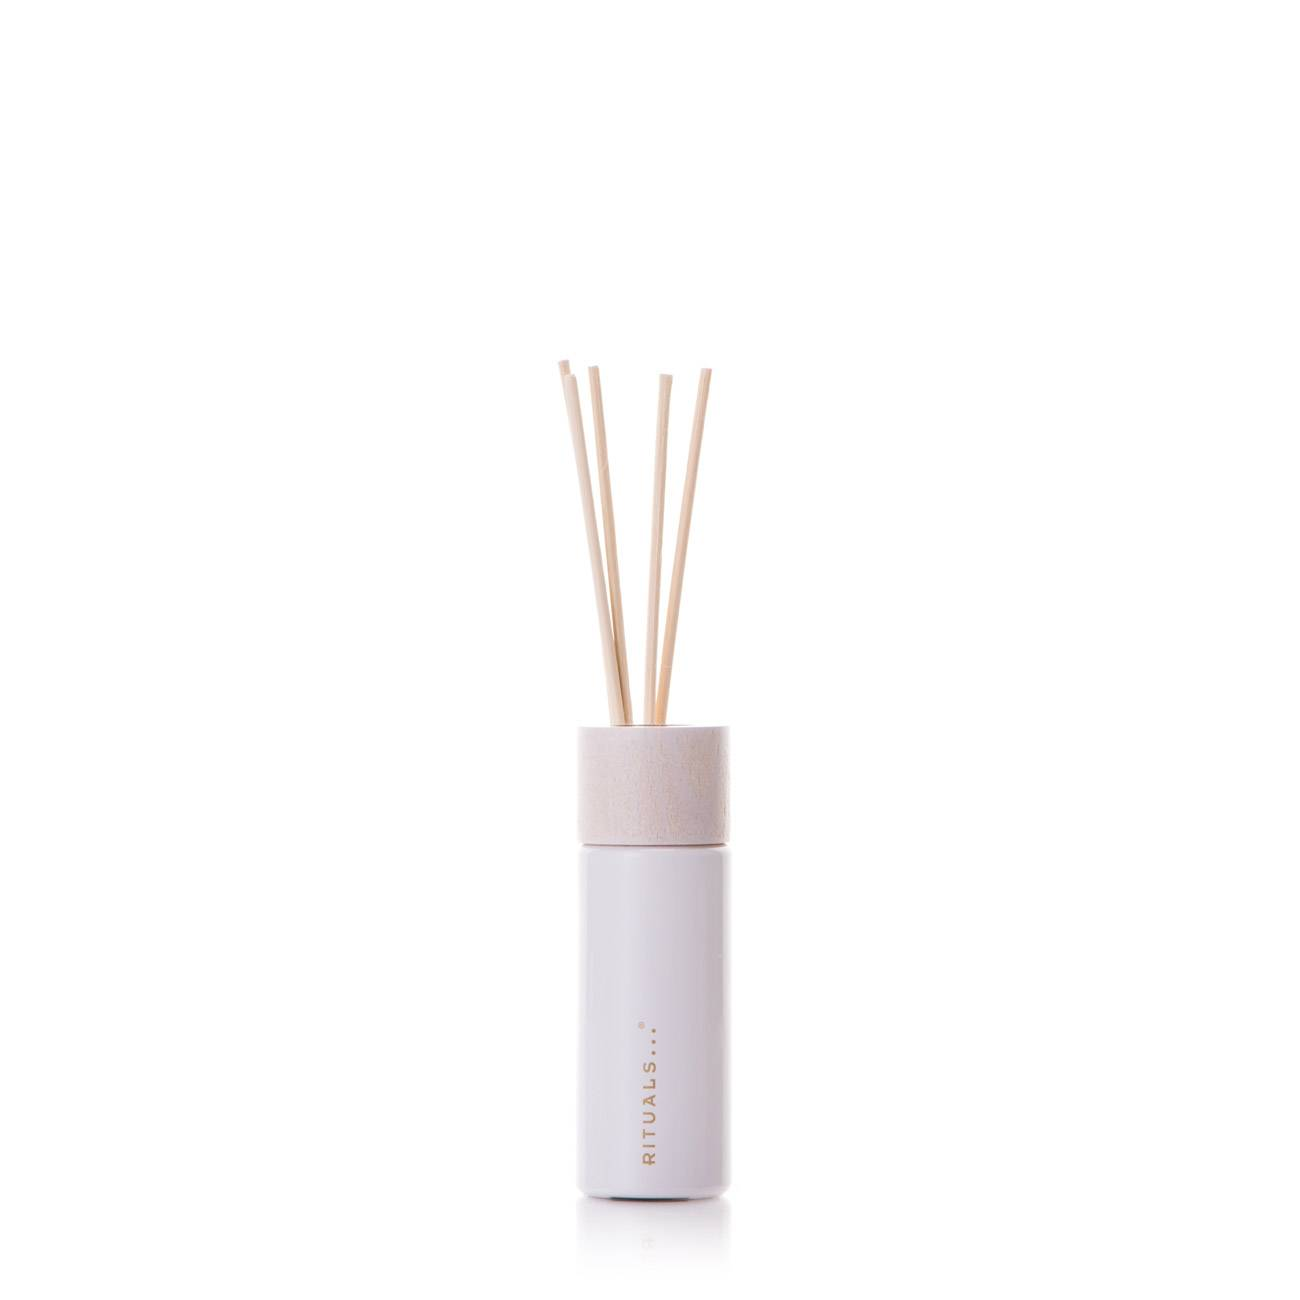 Ayurveda Mini Fragrance Sticks Rituals imagine 2021 bestvalue.eu